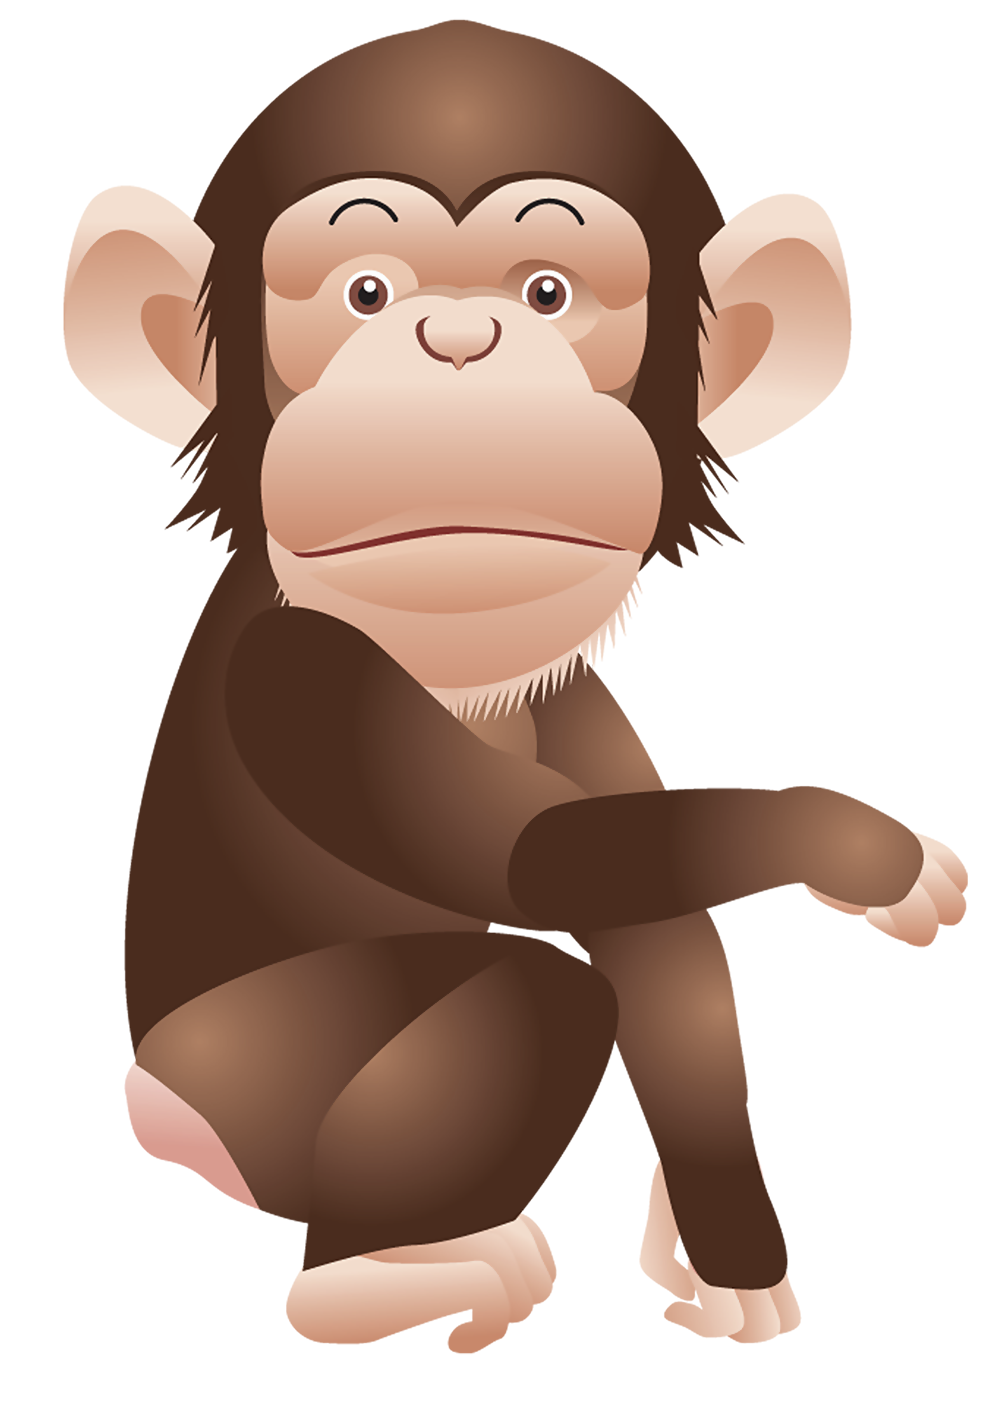 Monkey reading a book clipart picture transparent download Monkey PNG | Animal PNG | Pinterest | Animal picture transparent download